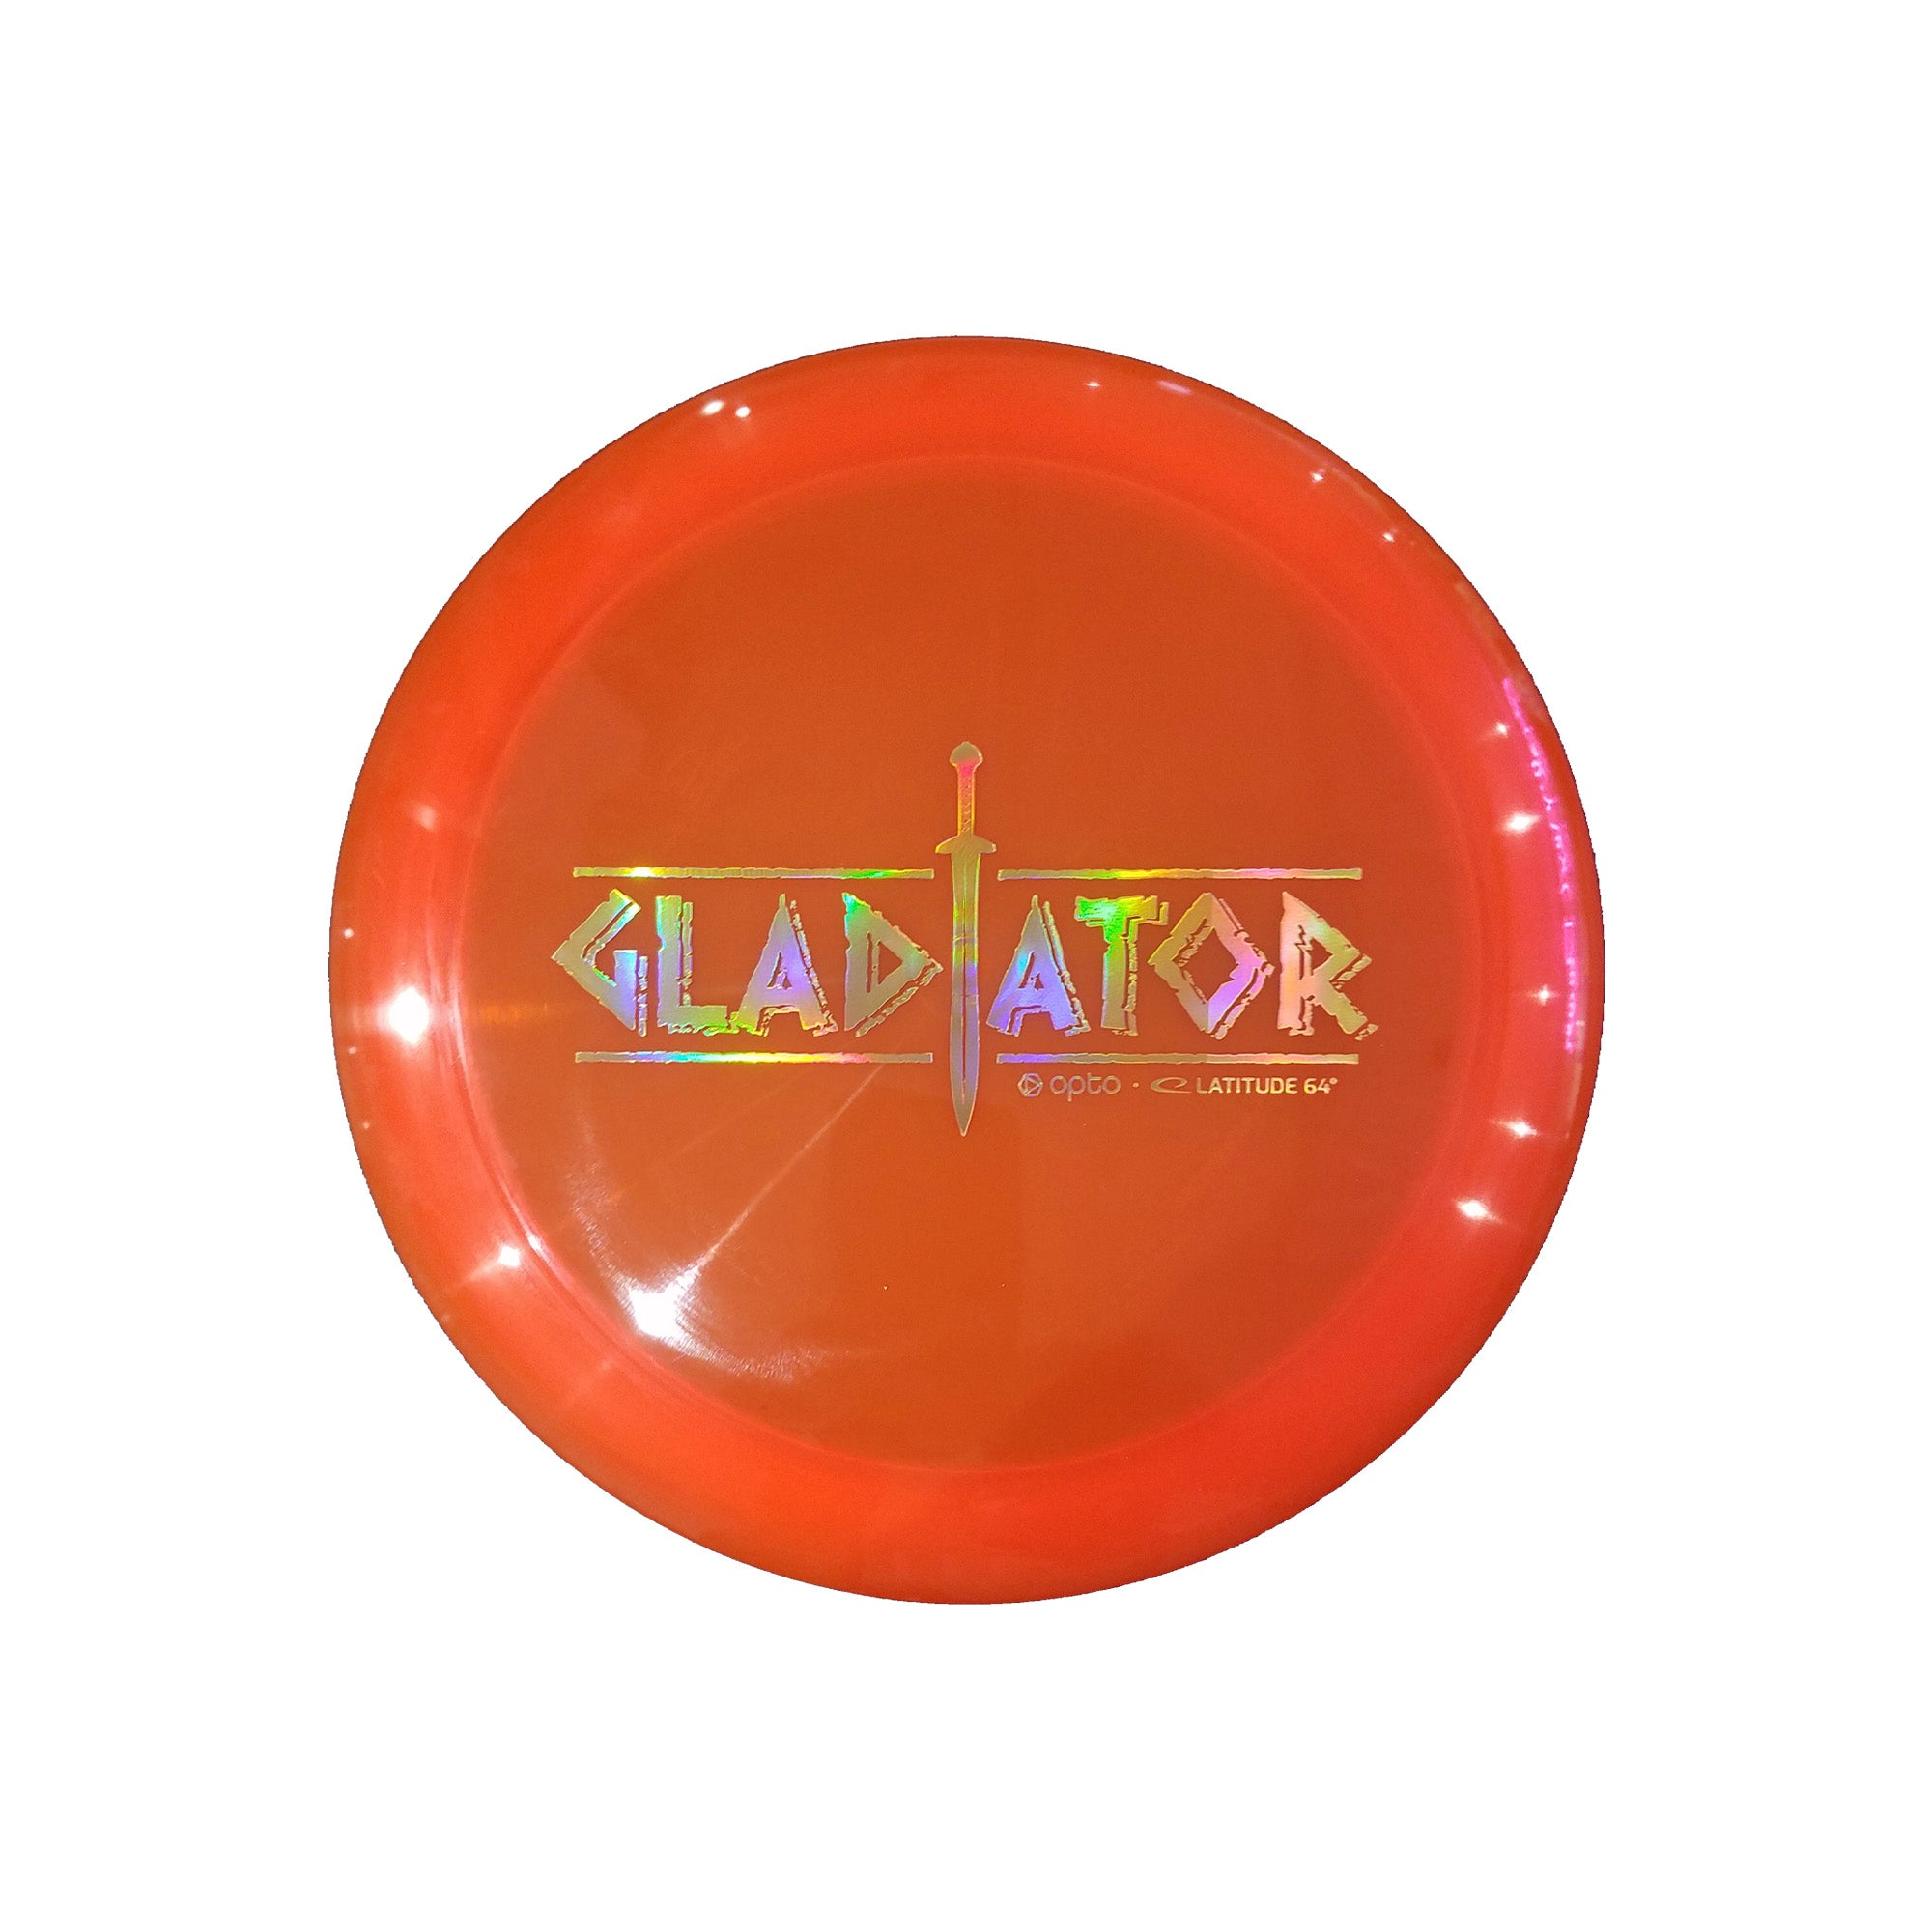 Latitude 64 Opto Gladiator Limited Edition Stamp Distance Driver Disc - 171g